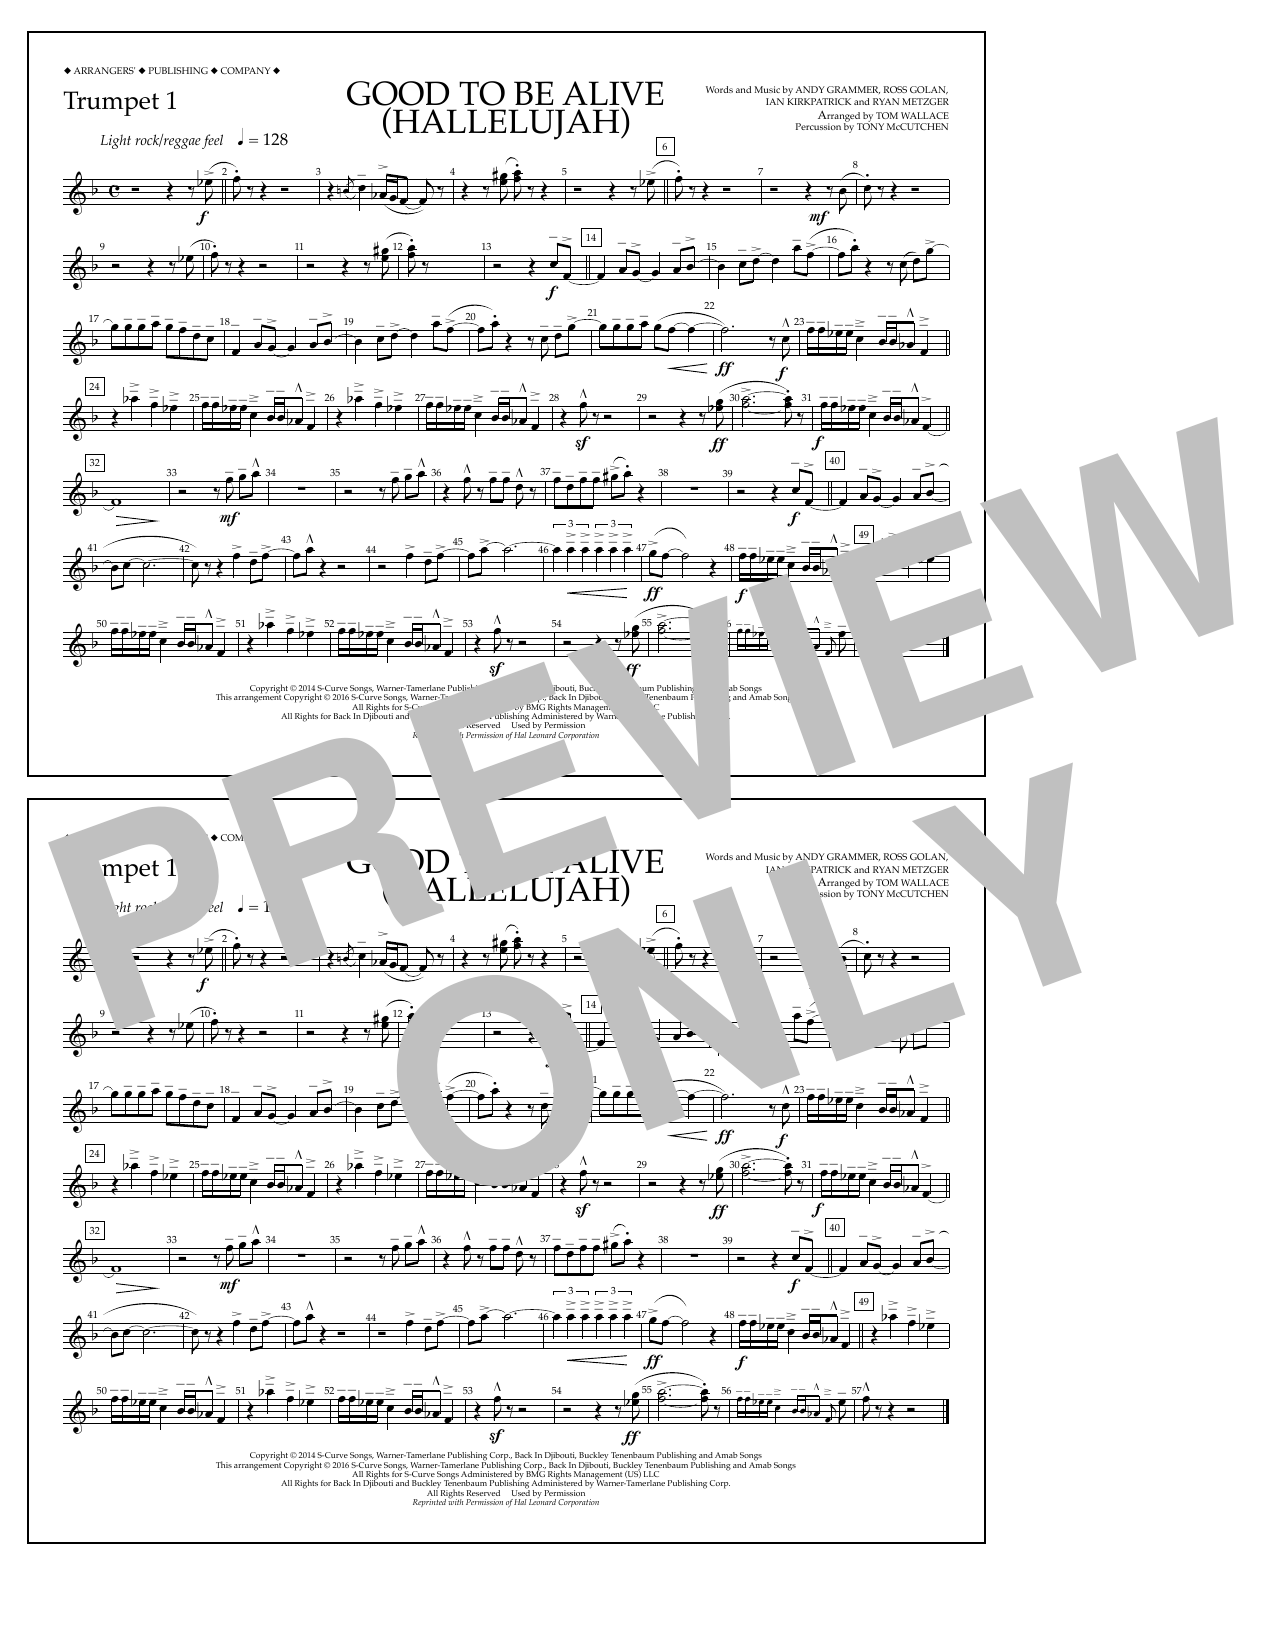 Good to Be Alive (Hallelujah) - Trumpet 1 Sheet Music